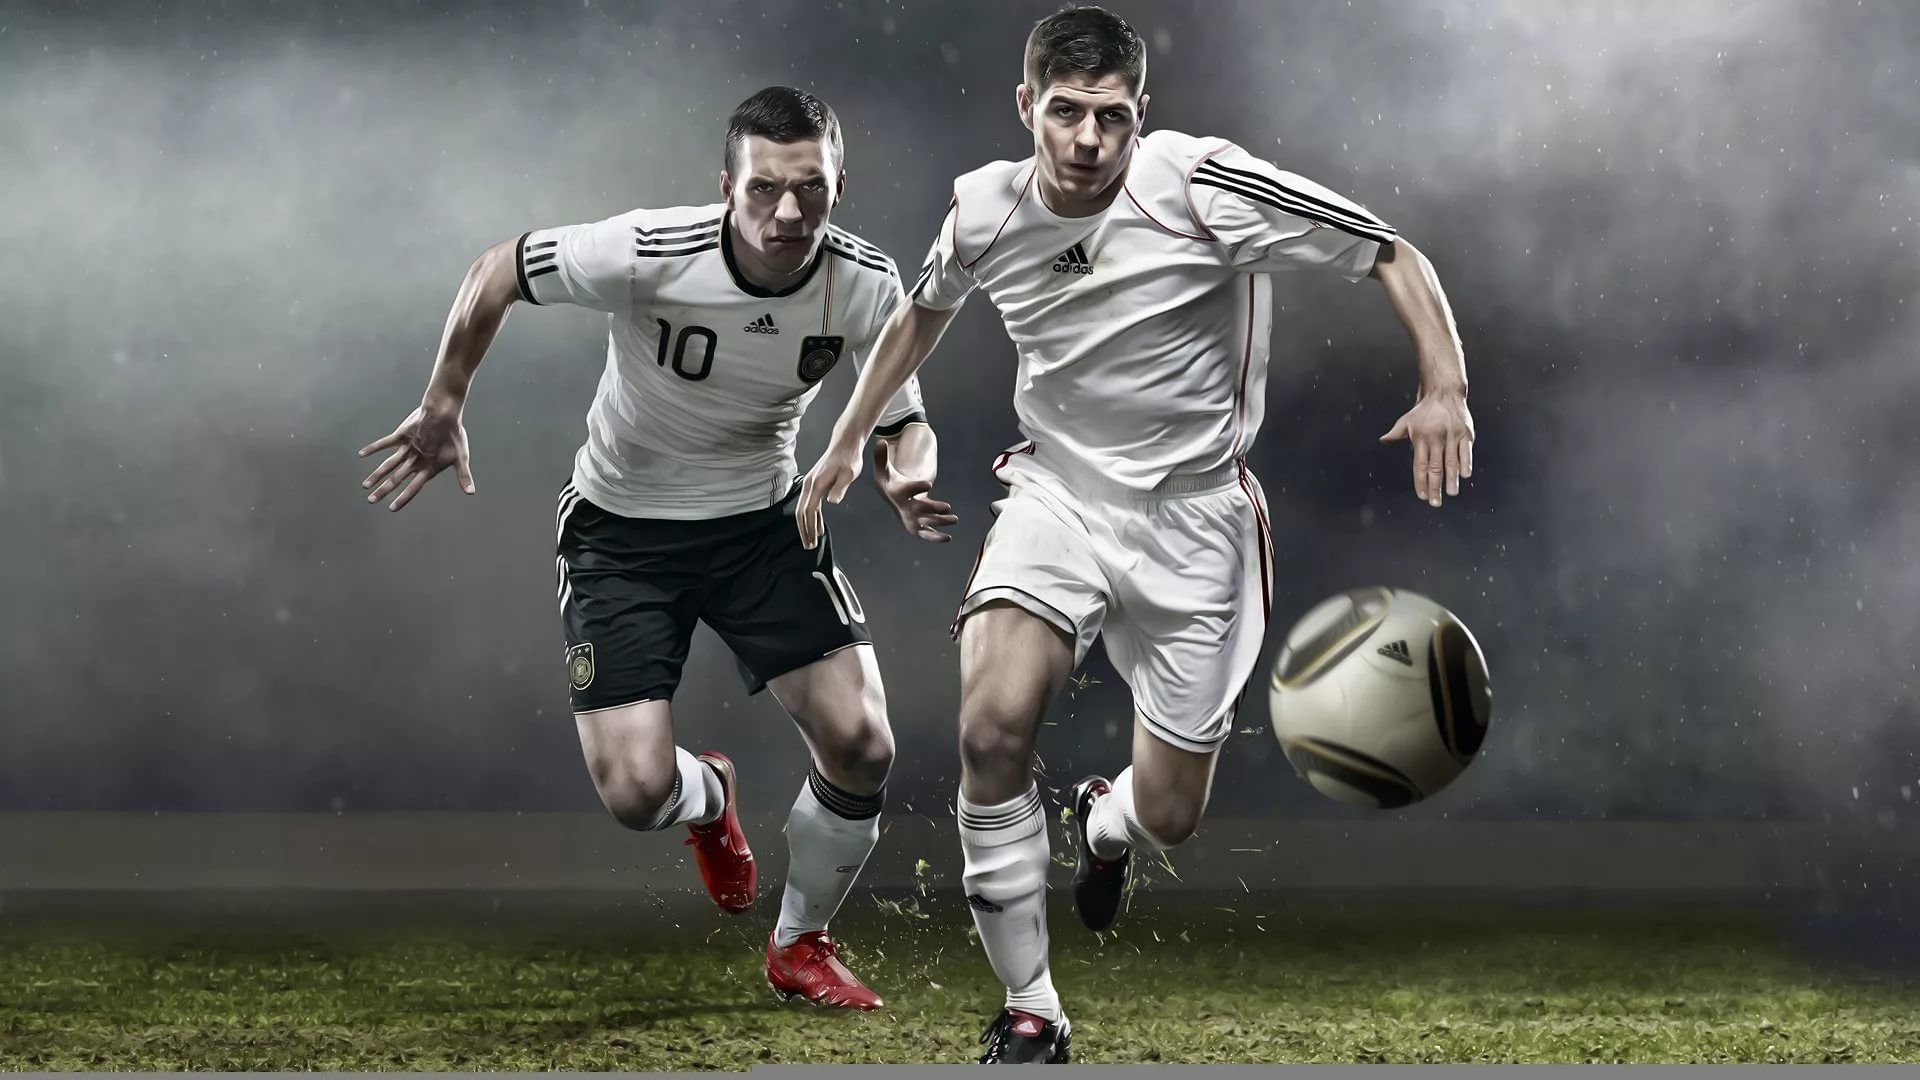 Soccer Player download free wallpapers for pc in hd